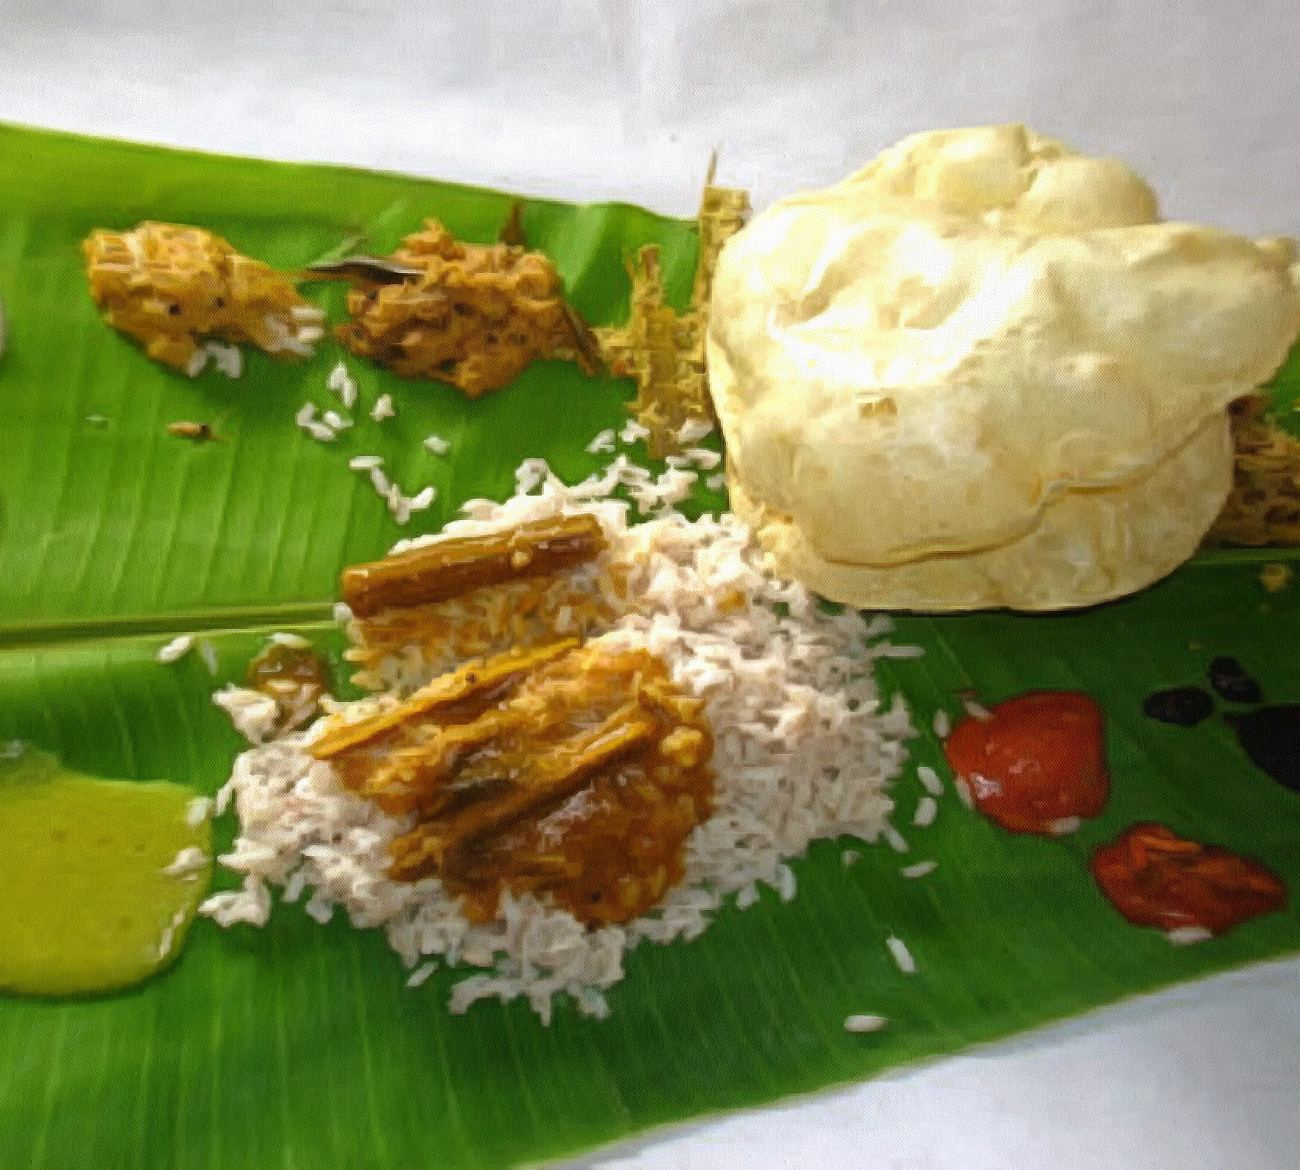 Lunch on banana leaf in South India